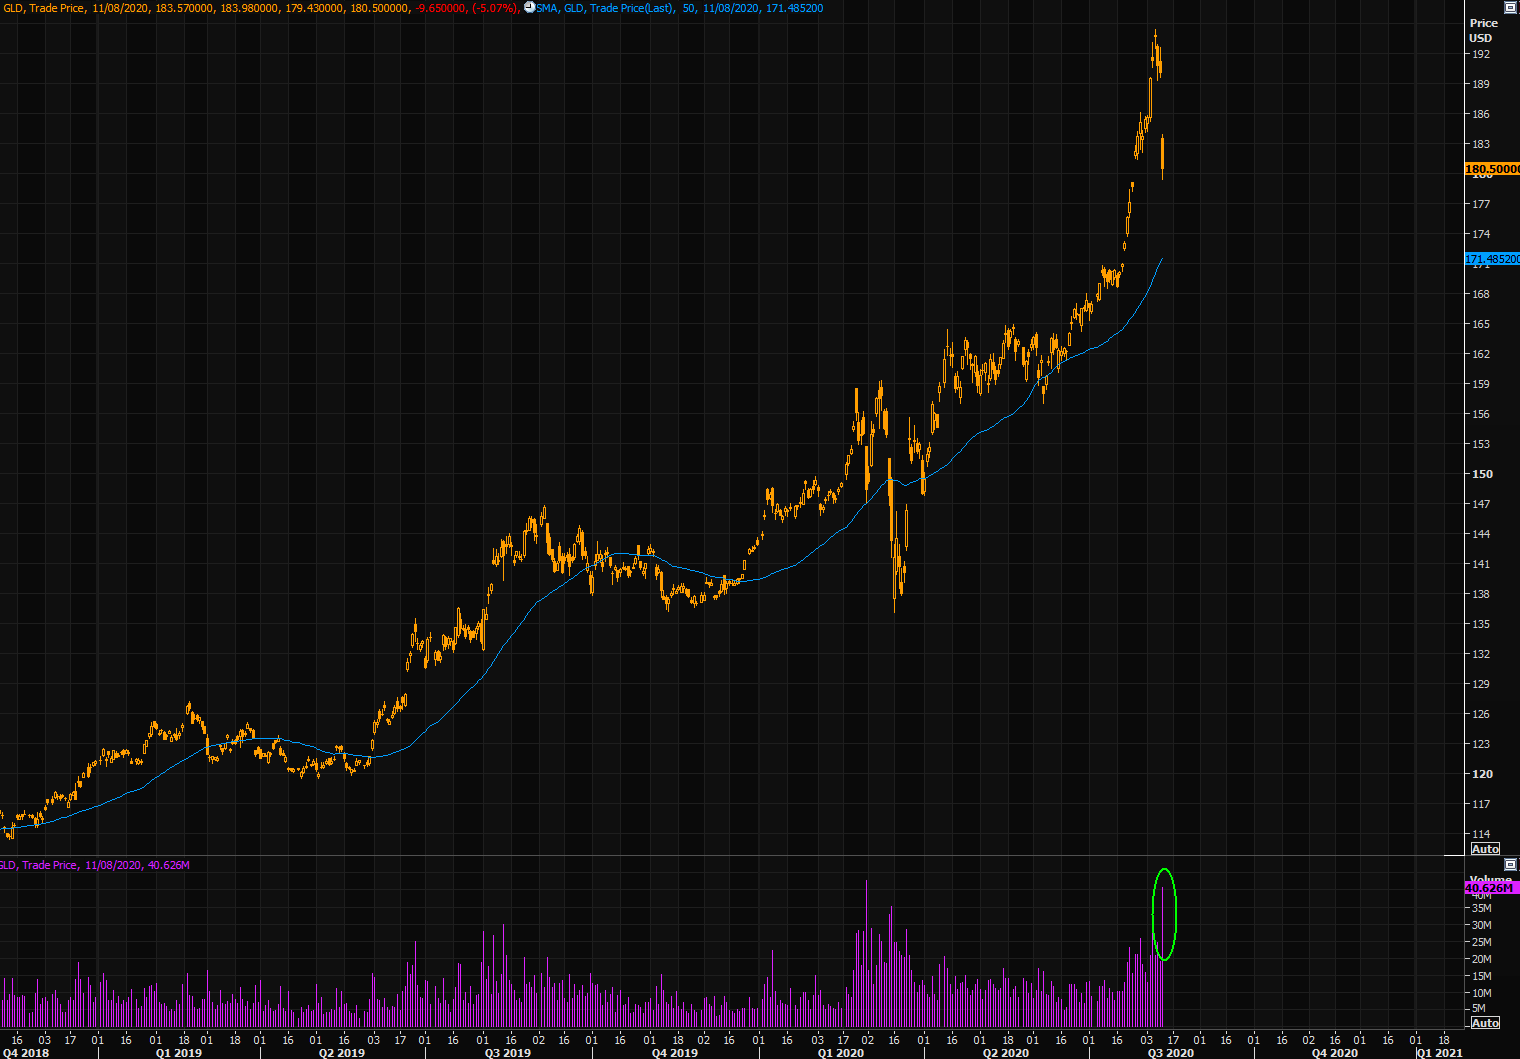 Gold volumes exploding as gold crashes